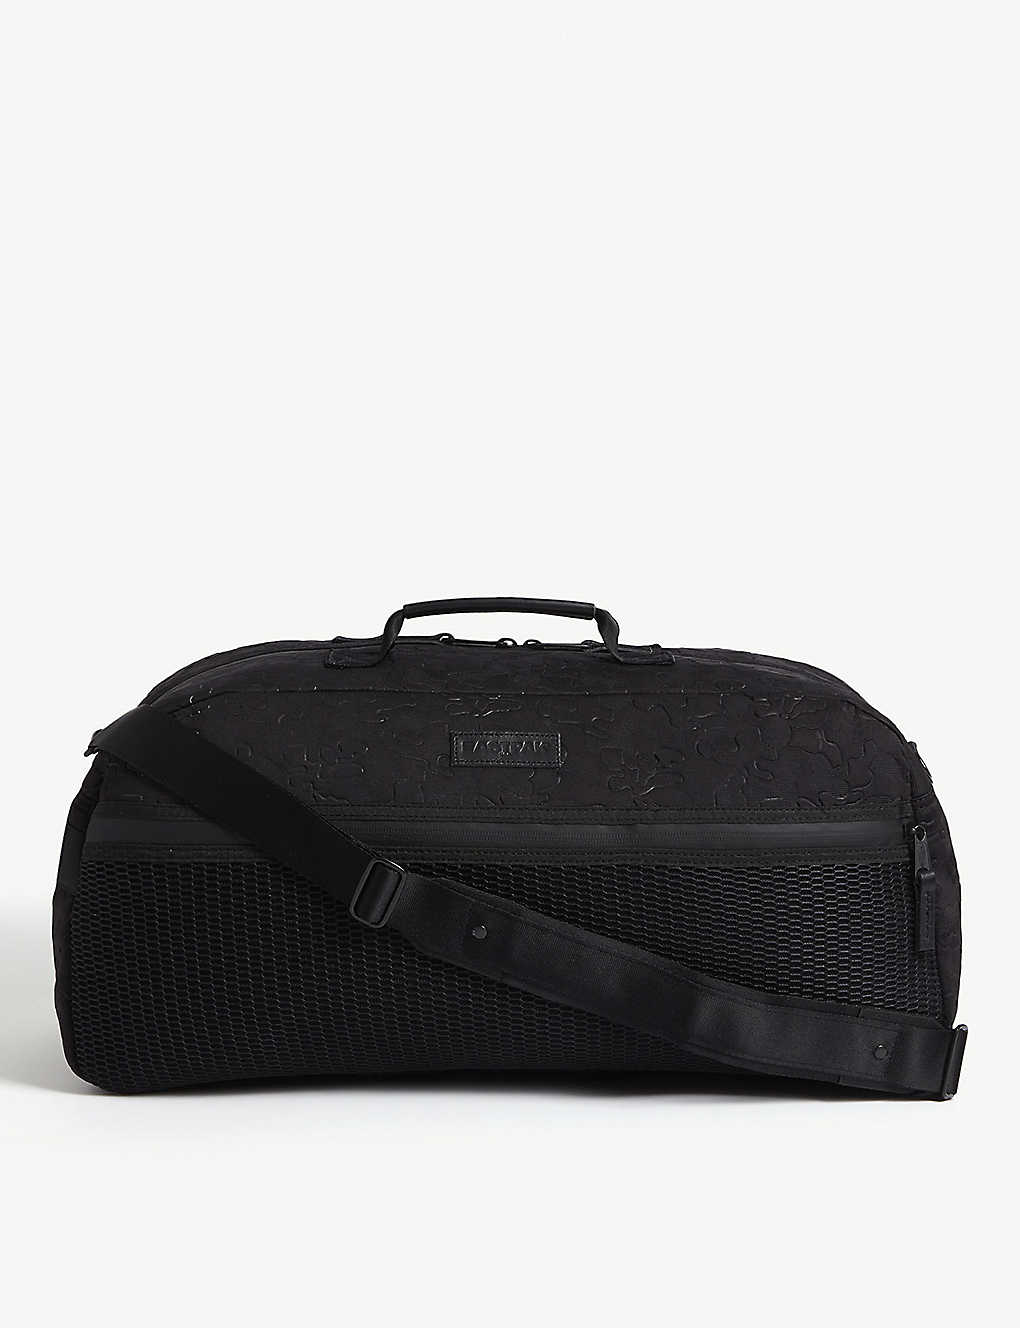 EASTPAK: Etched nylon duffle bag